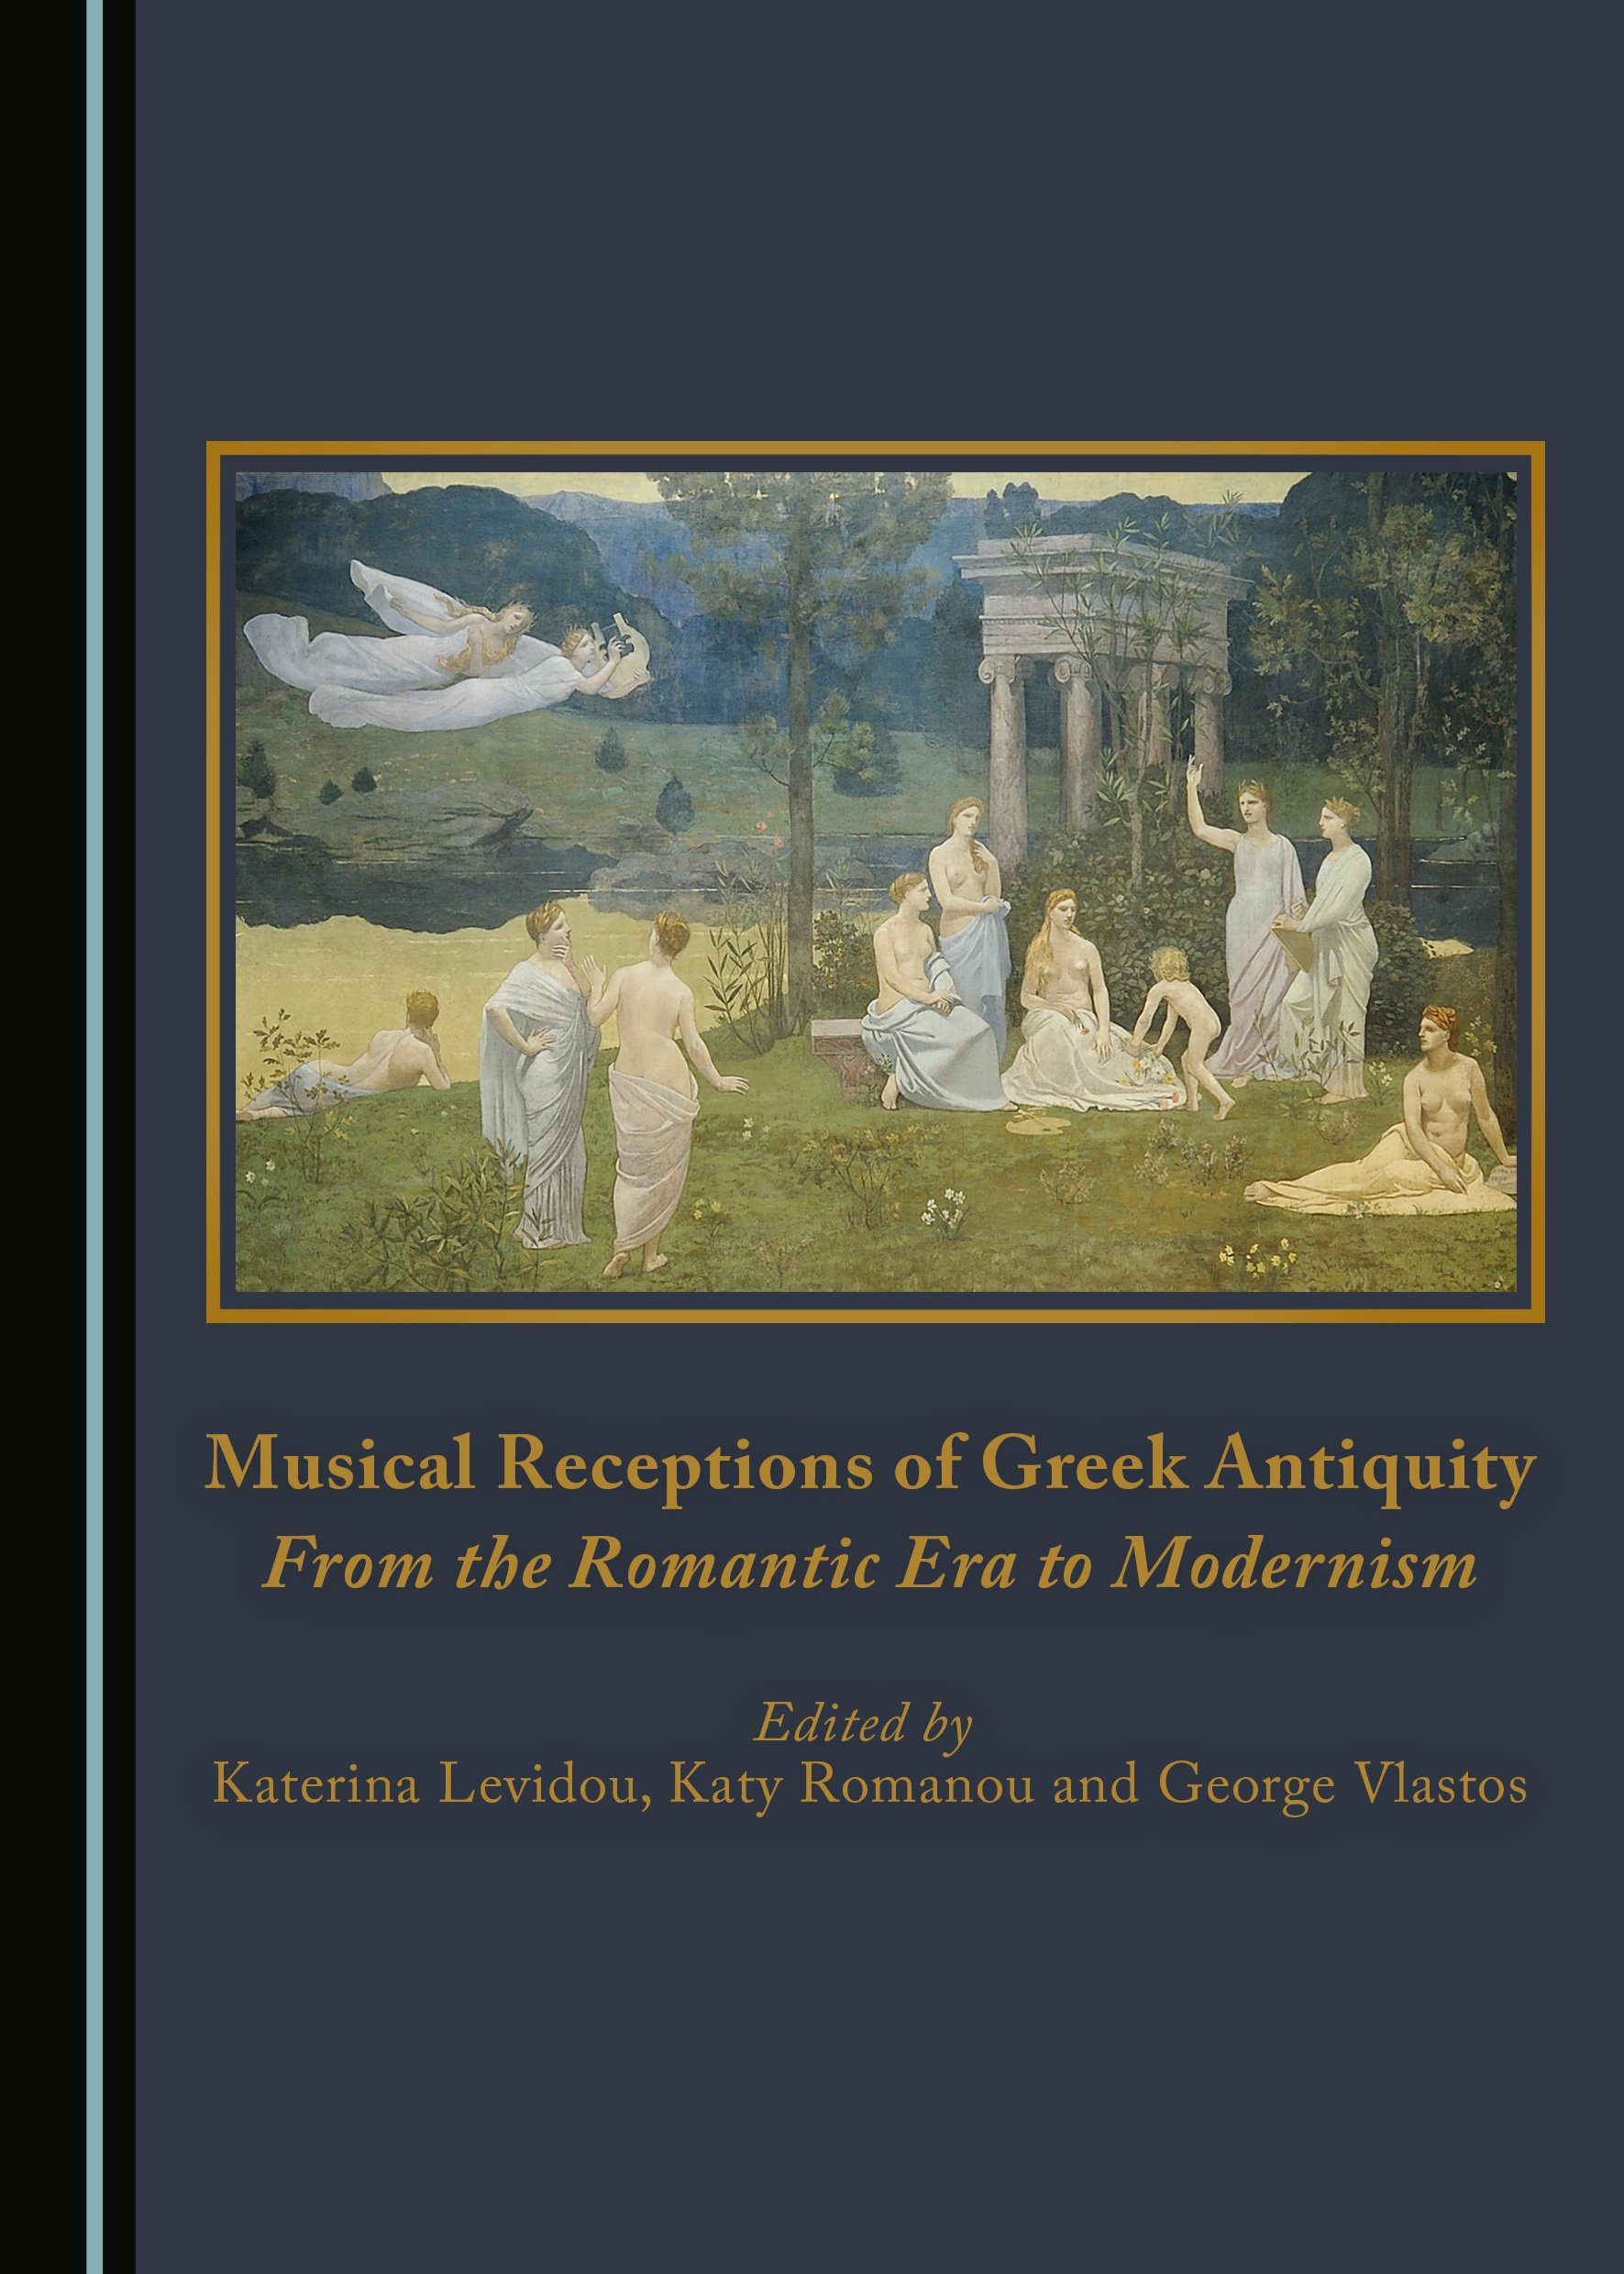 Musical Receptions of Greek Antiquity: From the Romantic Era to Modernism